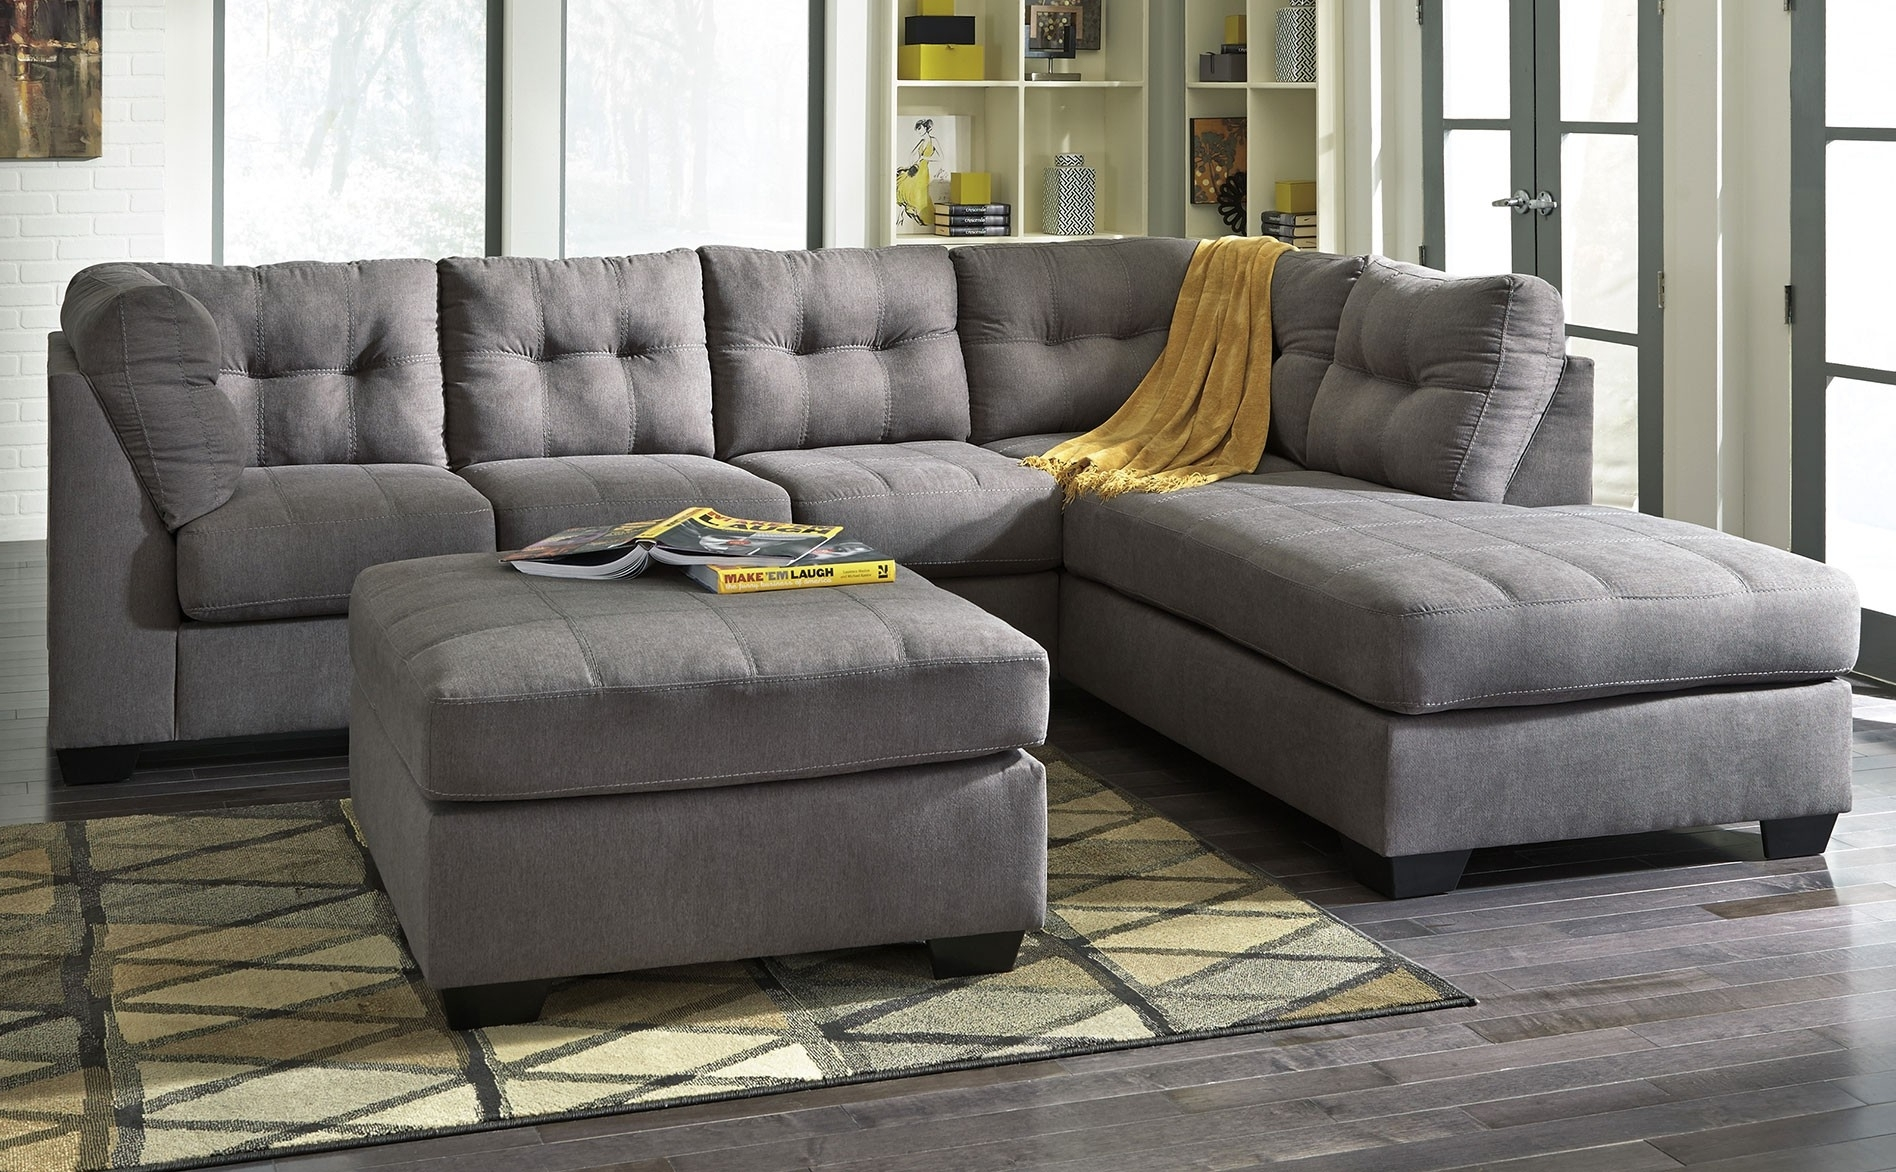 Sectional Sofas Under 500 Within Most Recent Sofa : Leather Couch Under 500 Sectionals Under 400 Room Couch (View 17 of 20)